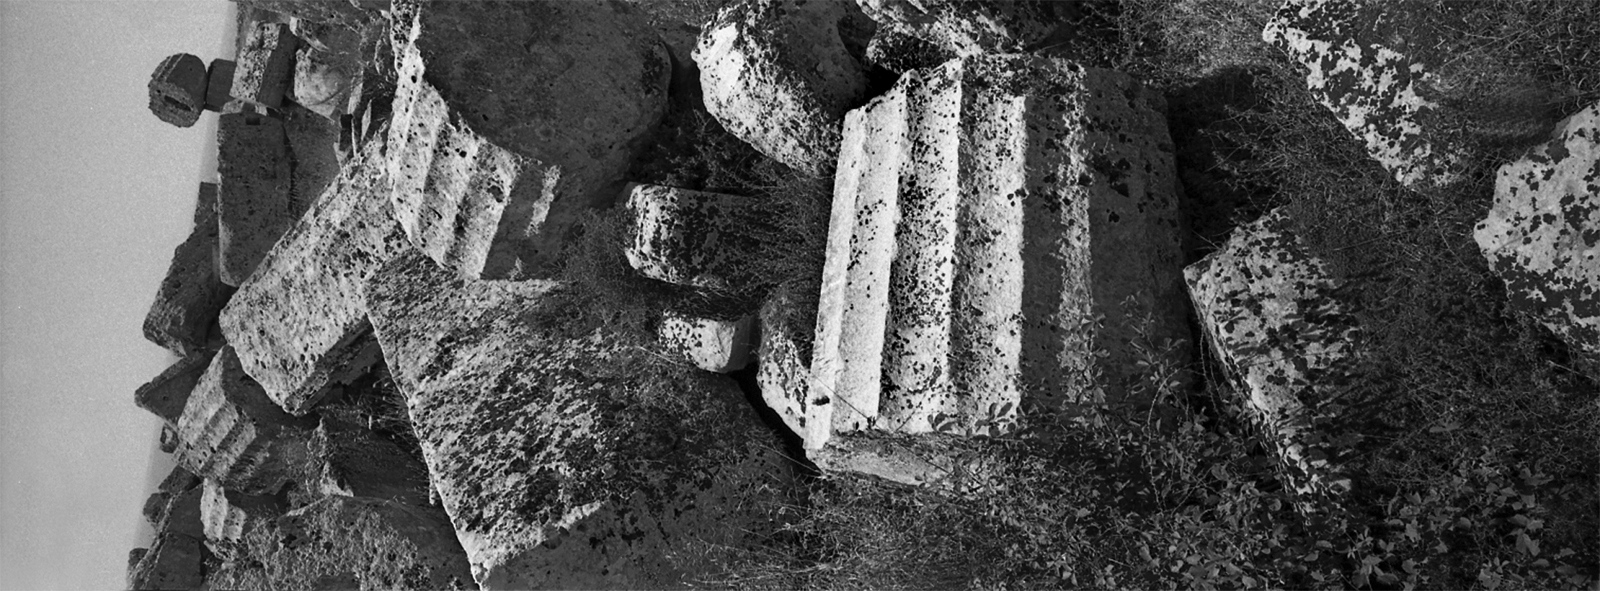 Art and Documentary Photography - Loading Archeologia_in_Sicilia___Fabio_Sgroi_010_.jpg